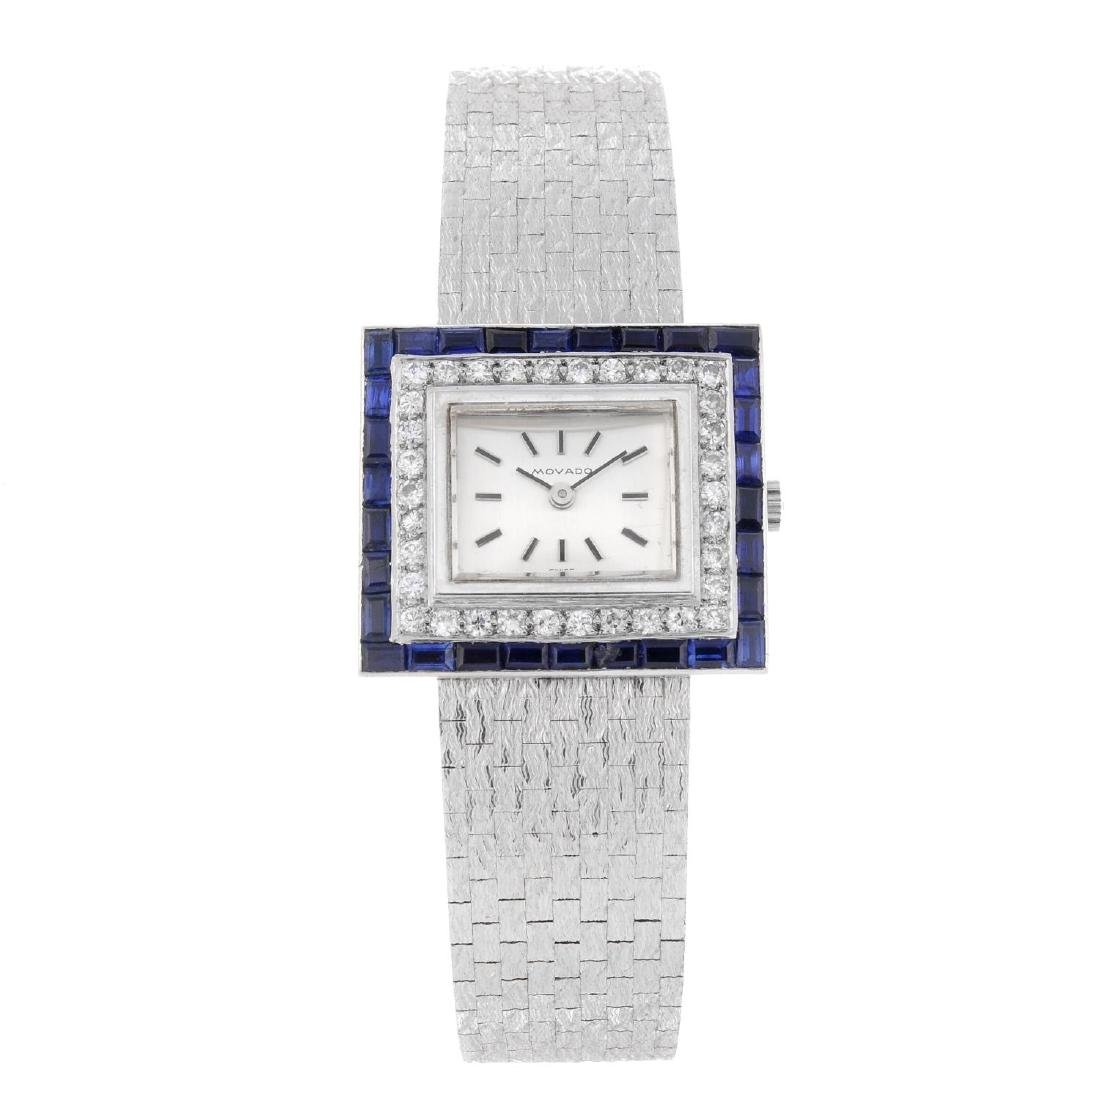 MOVADO - a lady's bracelet watch. White metal case with